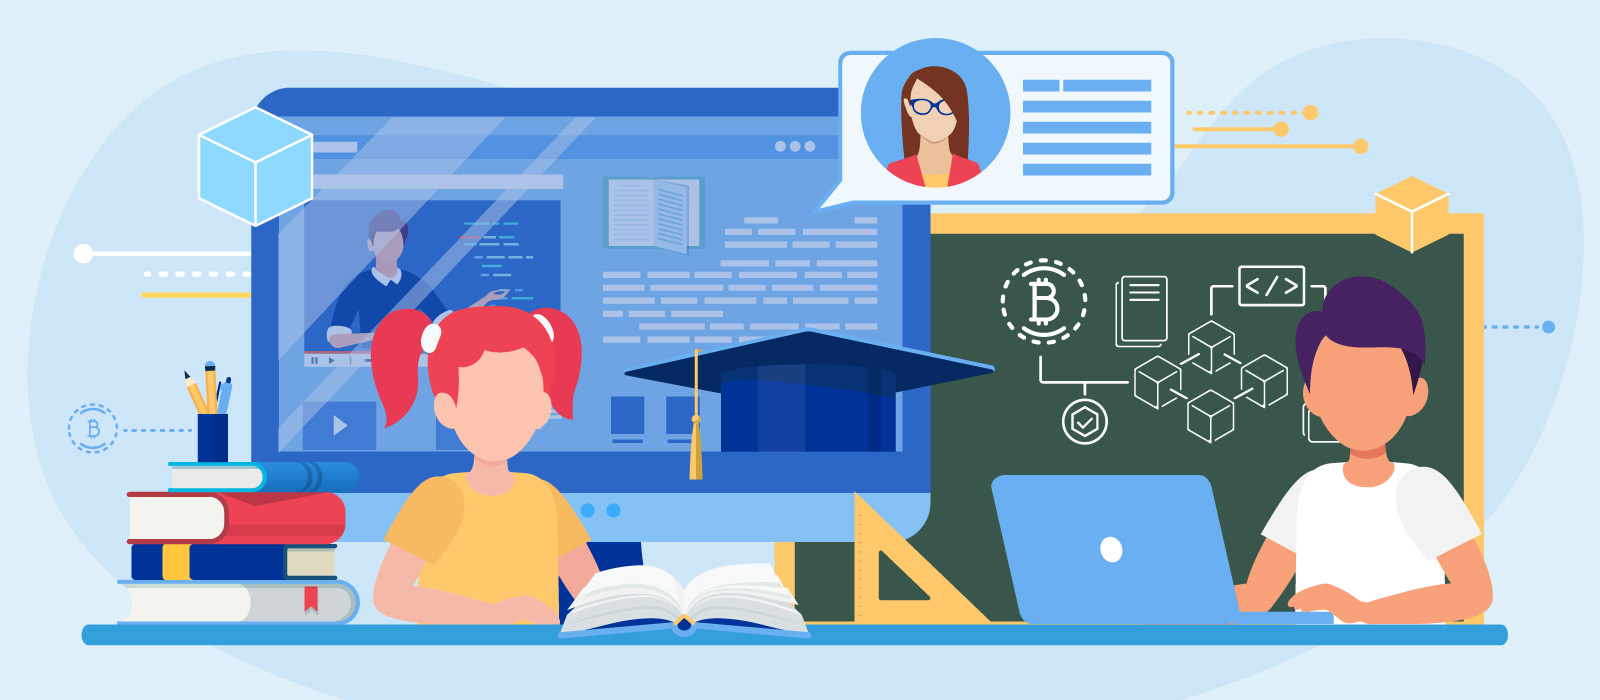 Blockchain in K-12 Education: Benefits and Use Cases